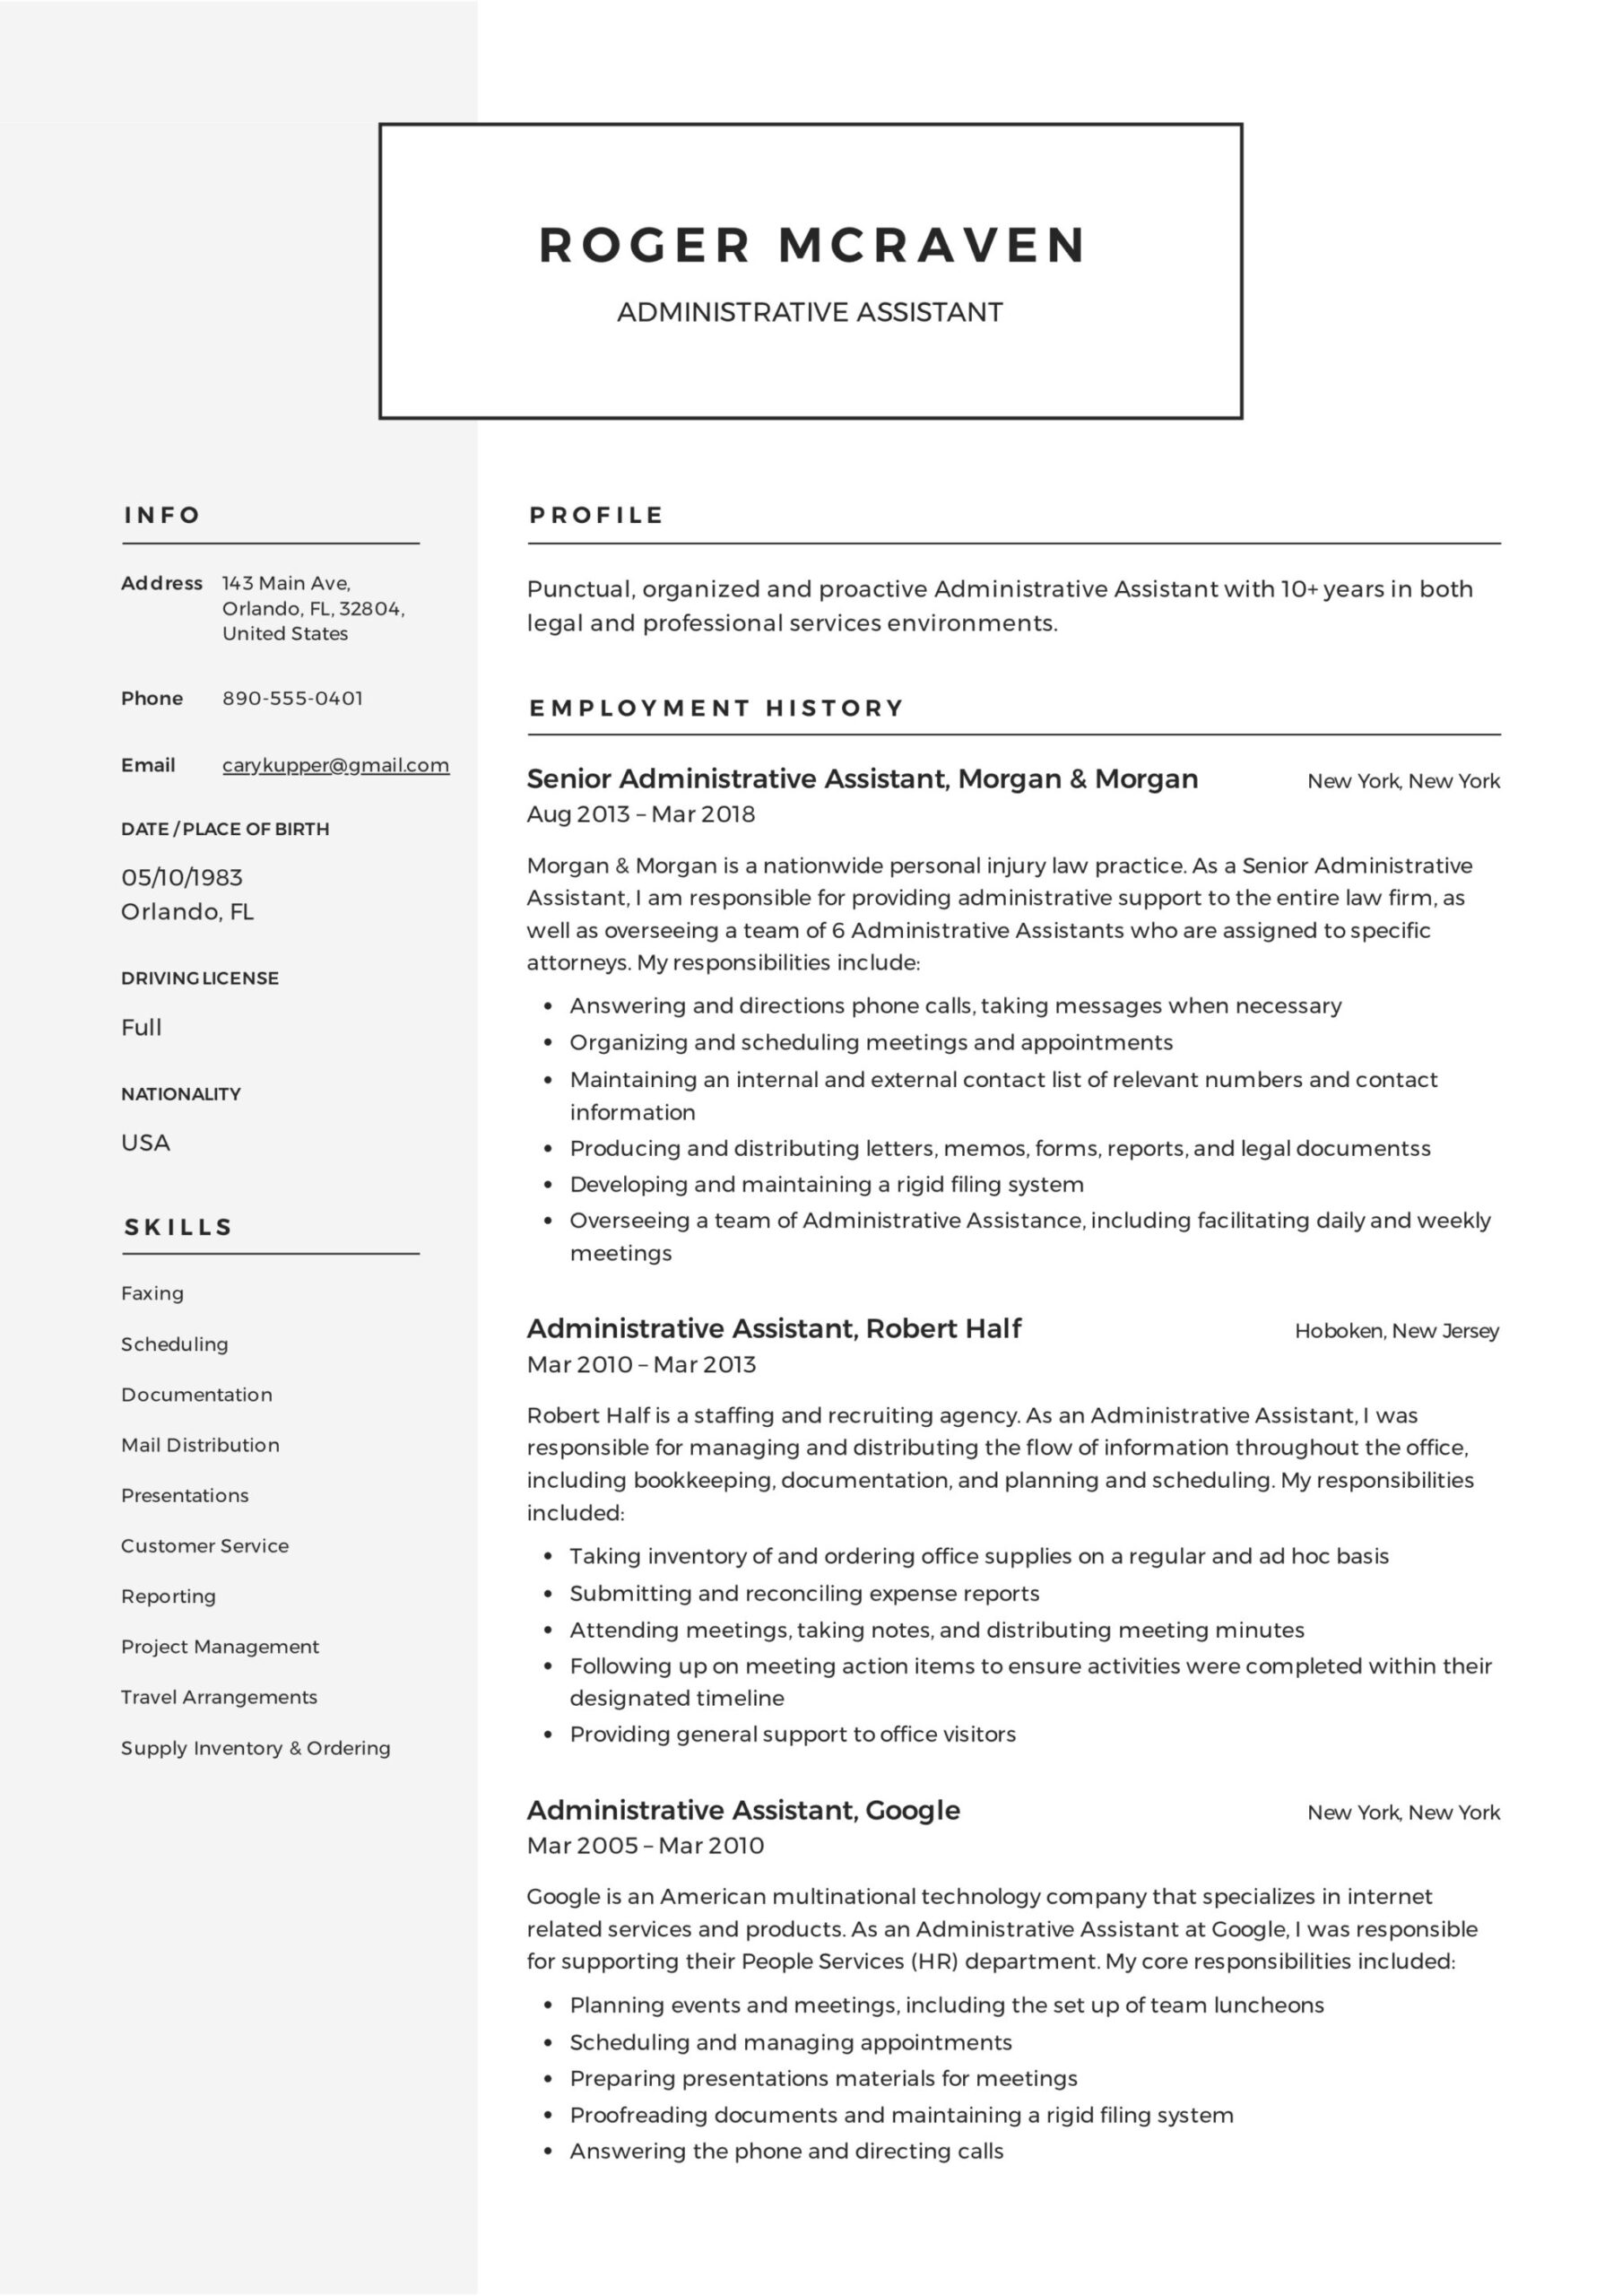 free administrative assistant resumes writing guide pdf resume templates template Resume Free Administrative Assistant Resume Templates